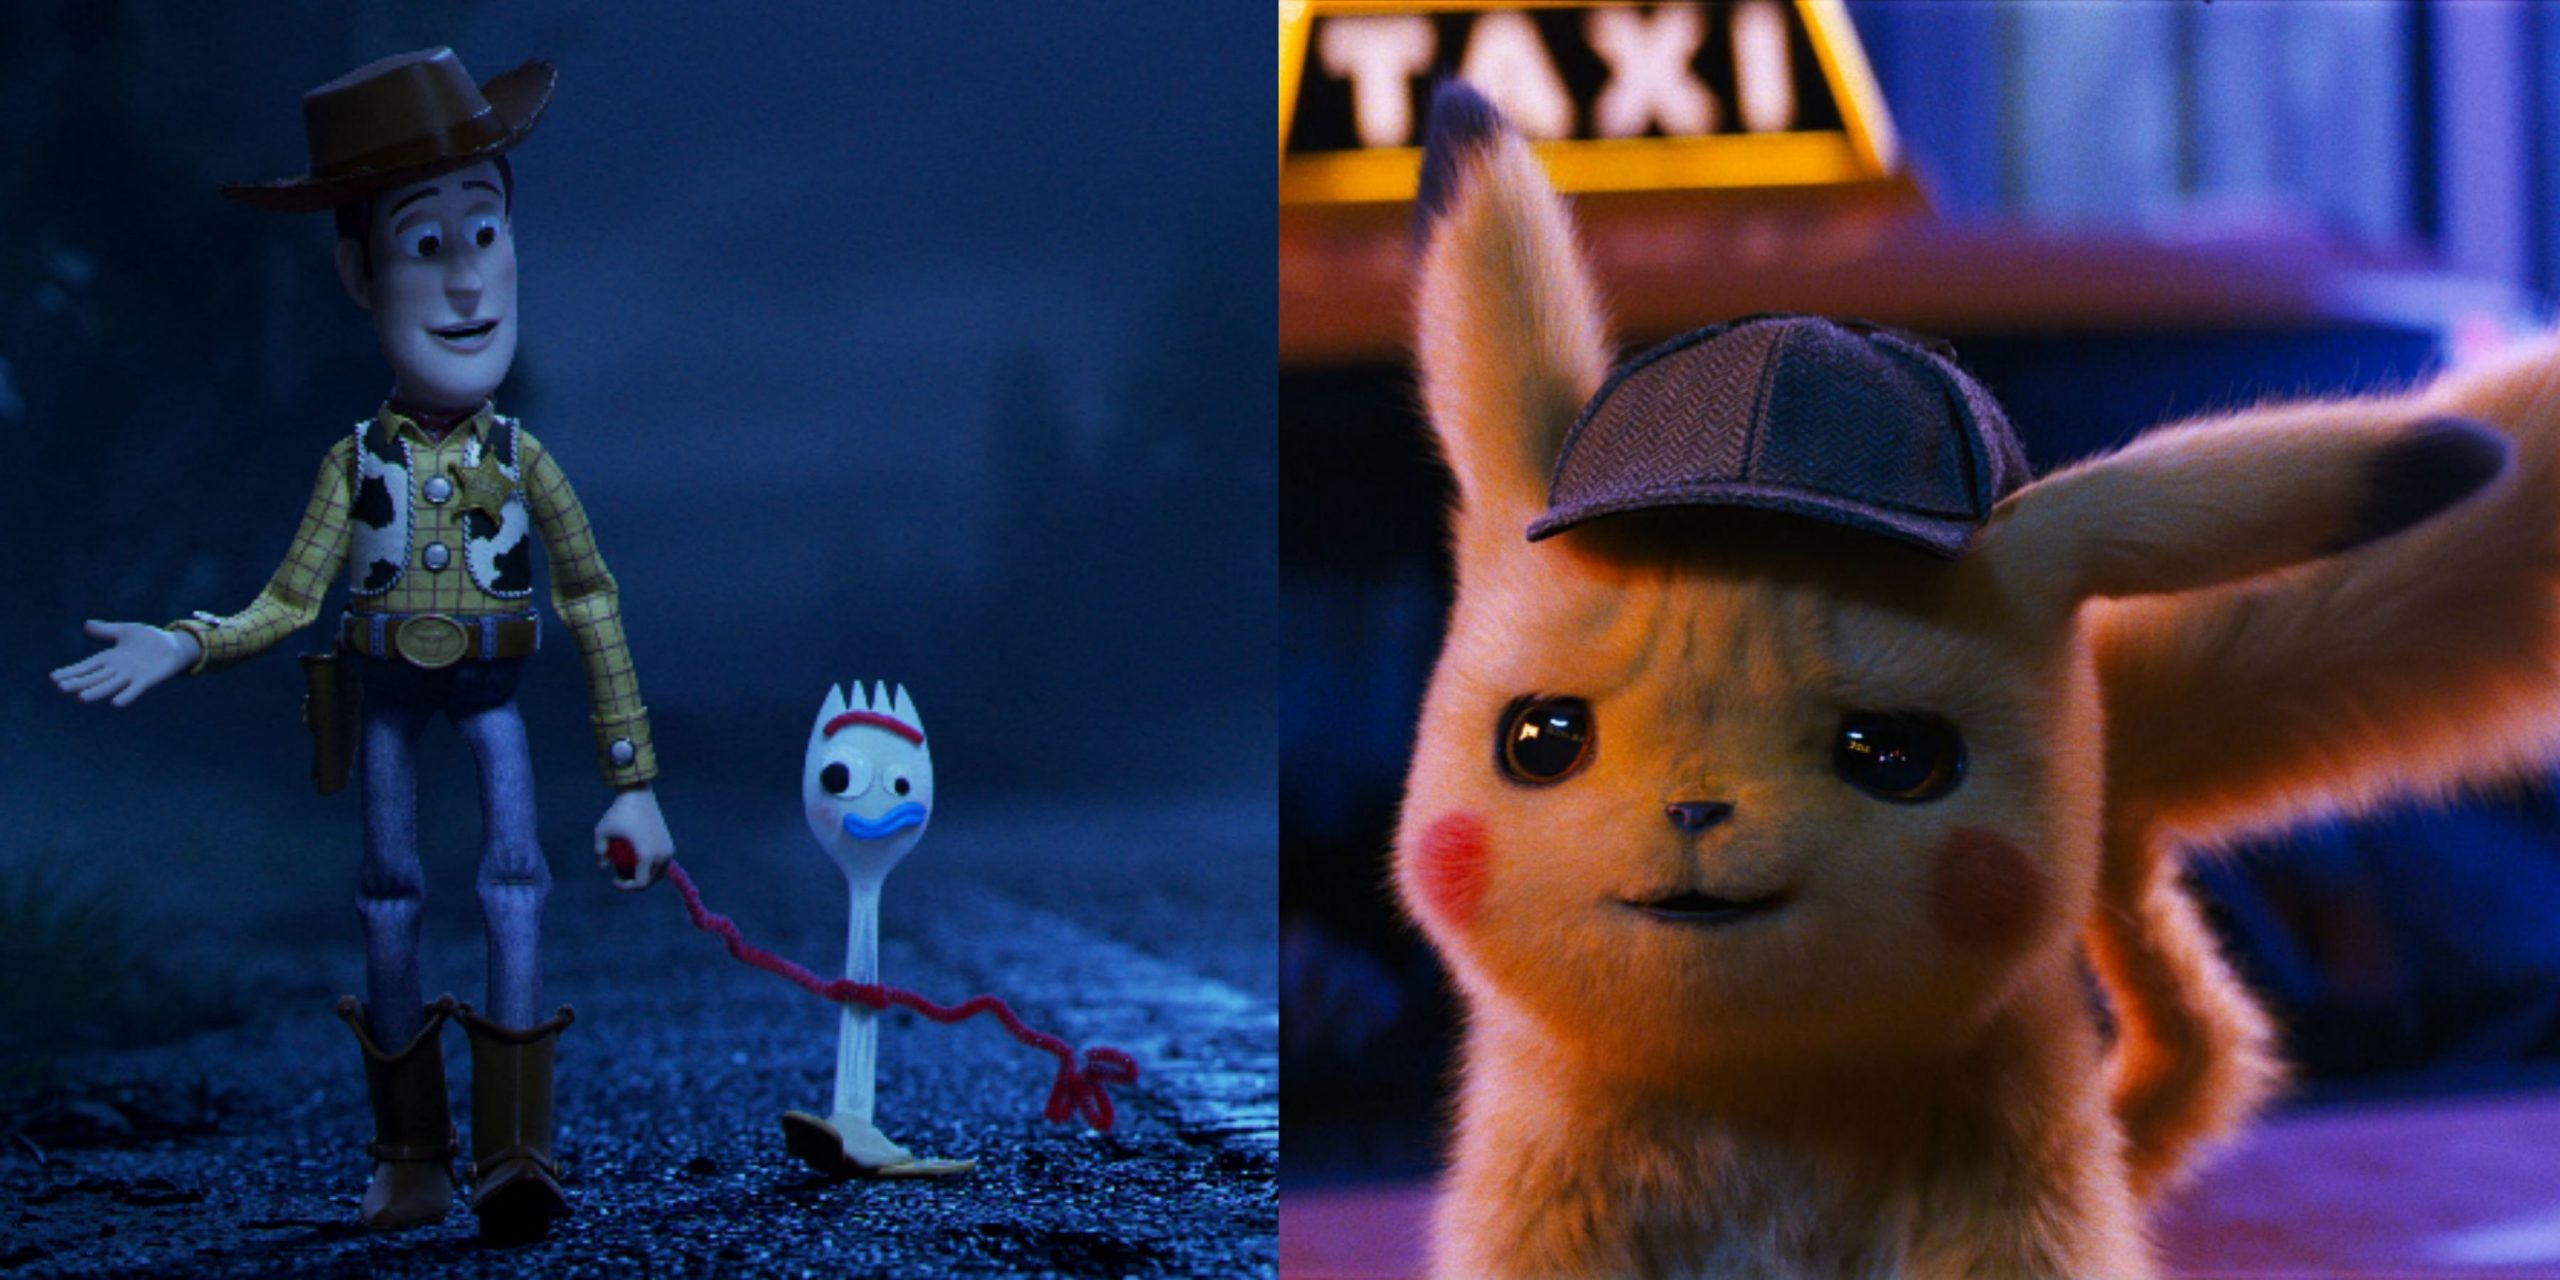 Memorable Animated Psychological Movies